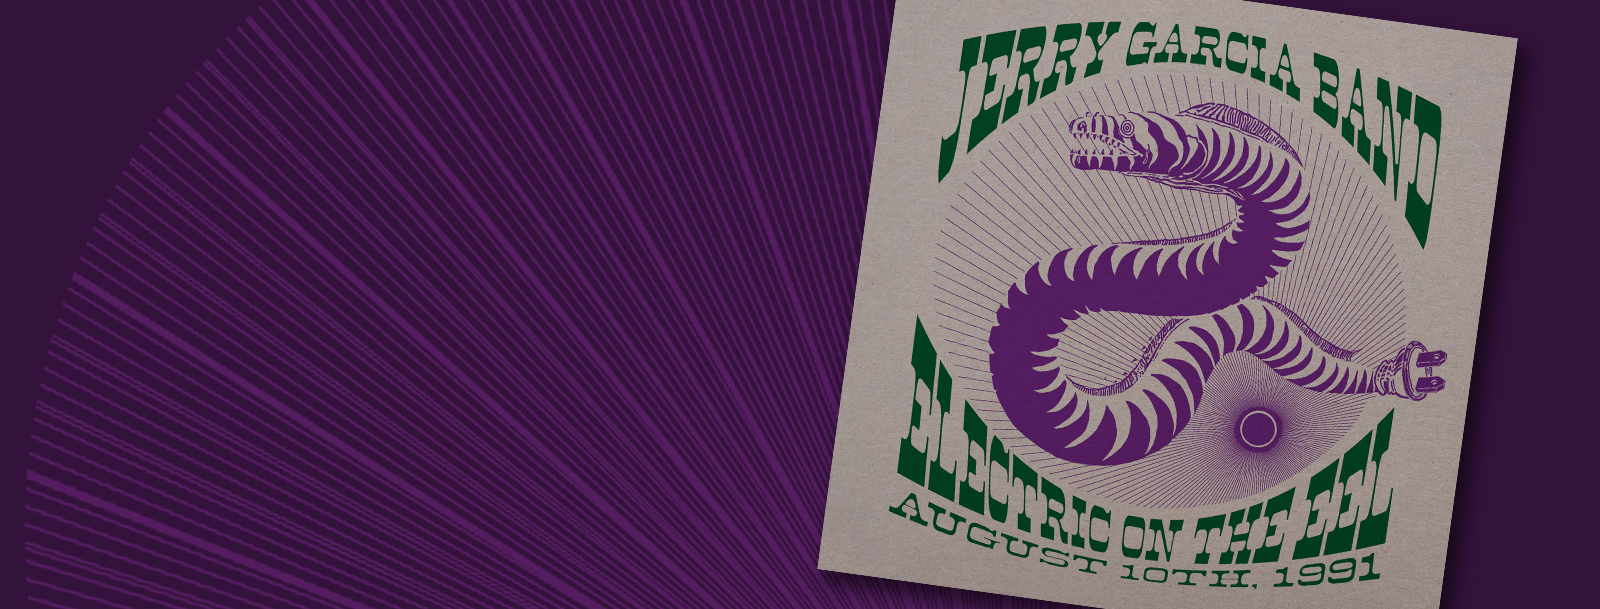 0ab1a67b Jerry Garcia Band Live On Vinyl! ELECTRIC ON THE EEL: ...